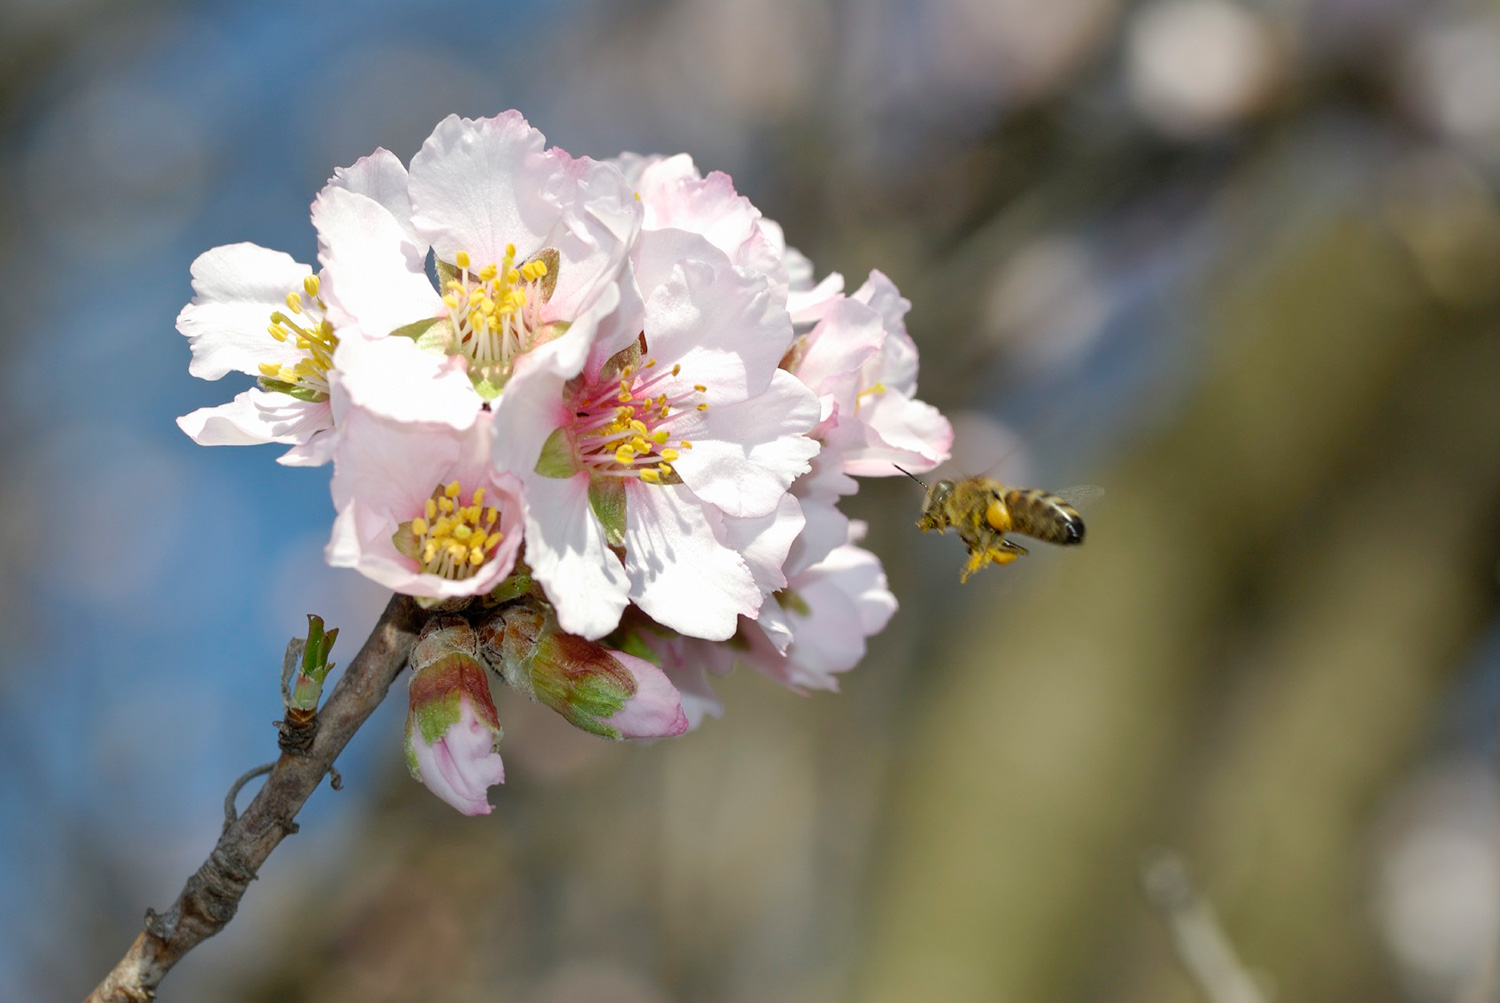 Summit_Premium_Nuts_Blossom_Bee_web.jpg